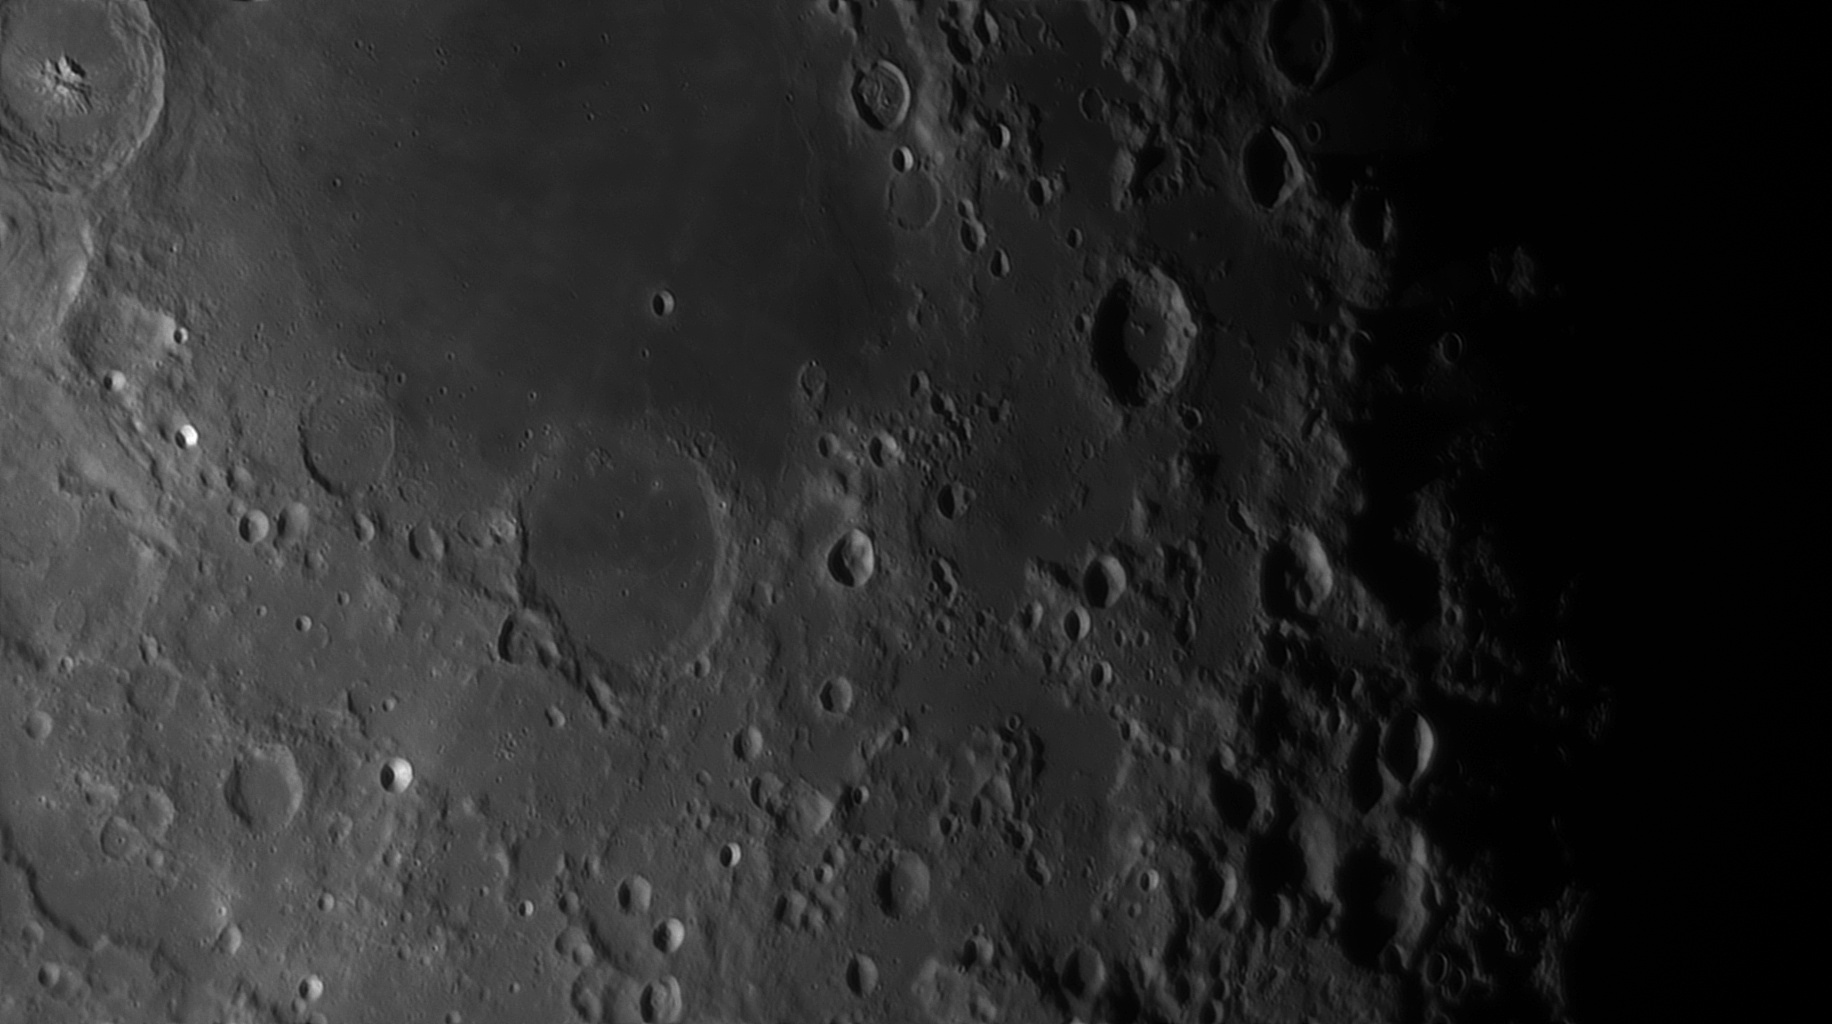 5e56c943a21c5_Moon_055601_120220_ZWOASI290MM_IR_742nm_AS_P30_lapl4_ap1131_AI_Deconvolution_13.jpg.42104cdad08963ec2fb7e8ddc6a1437f.jpg